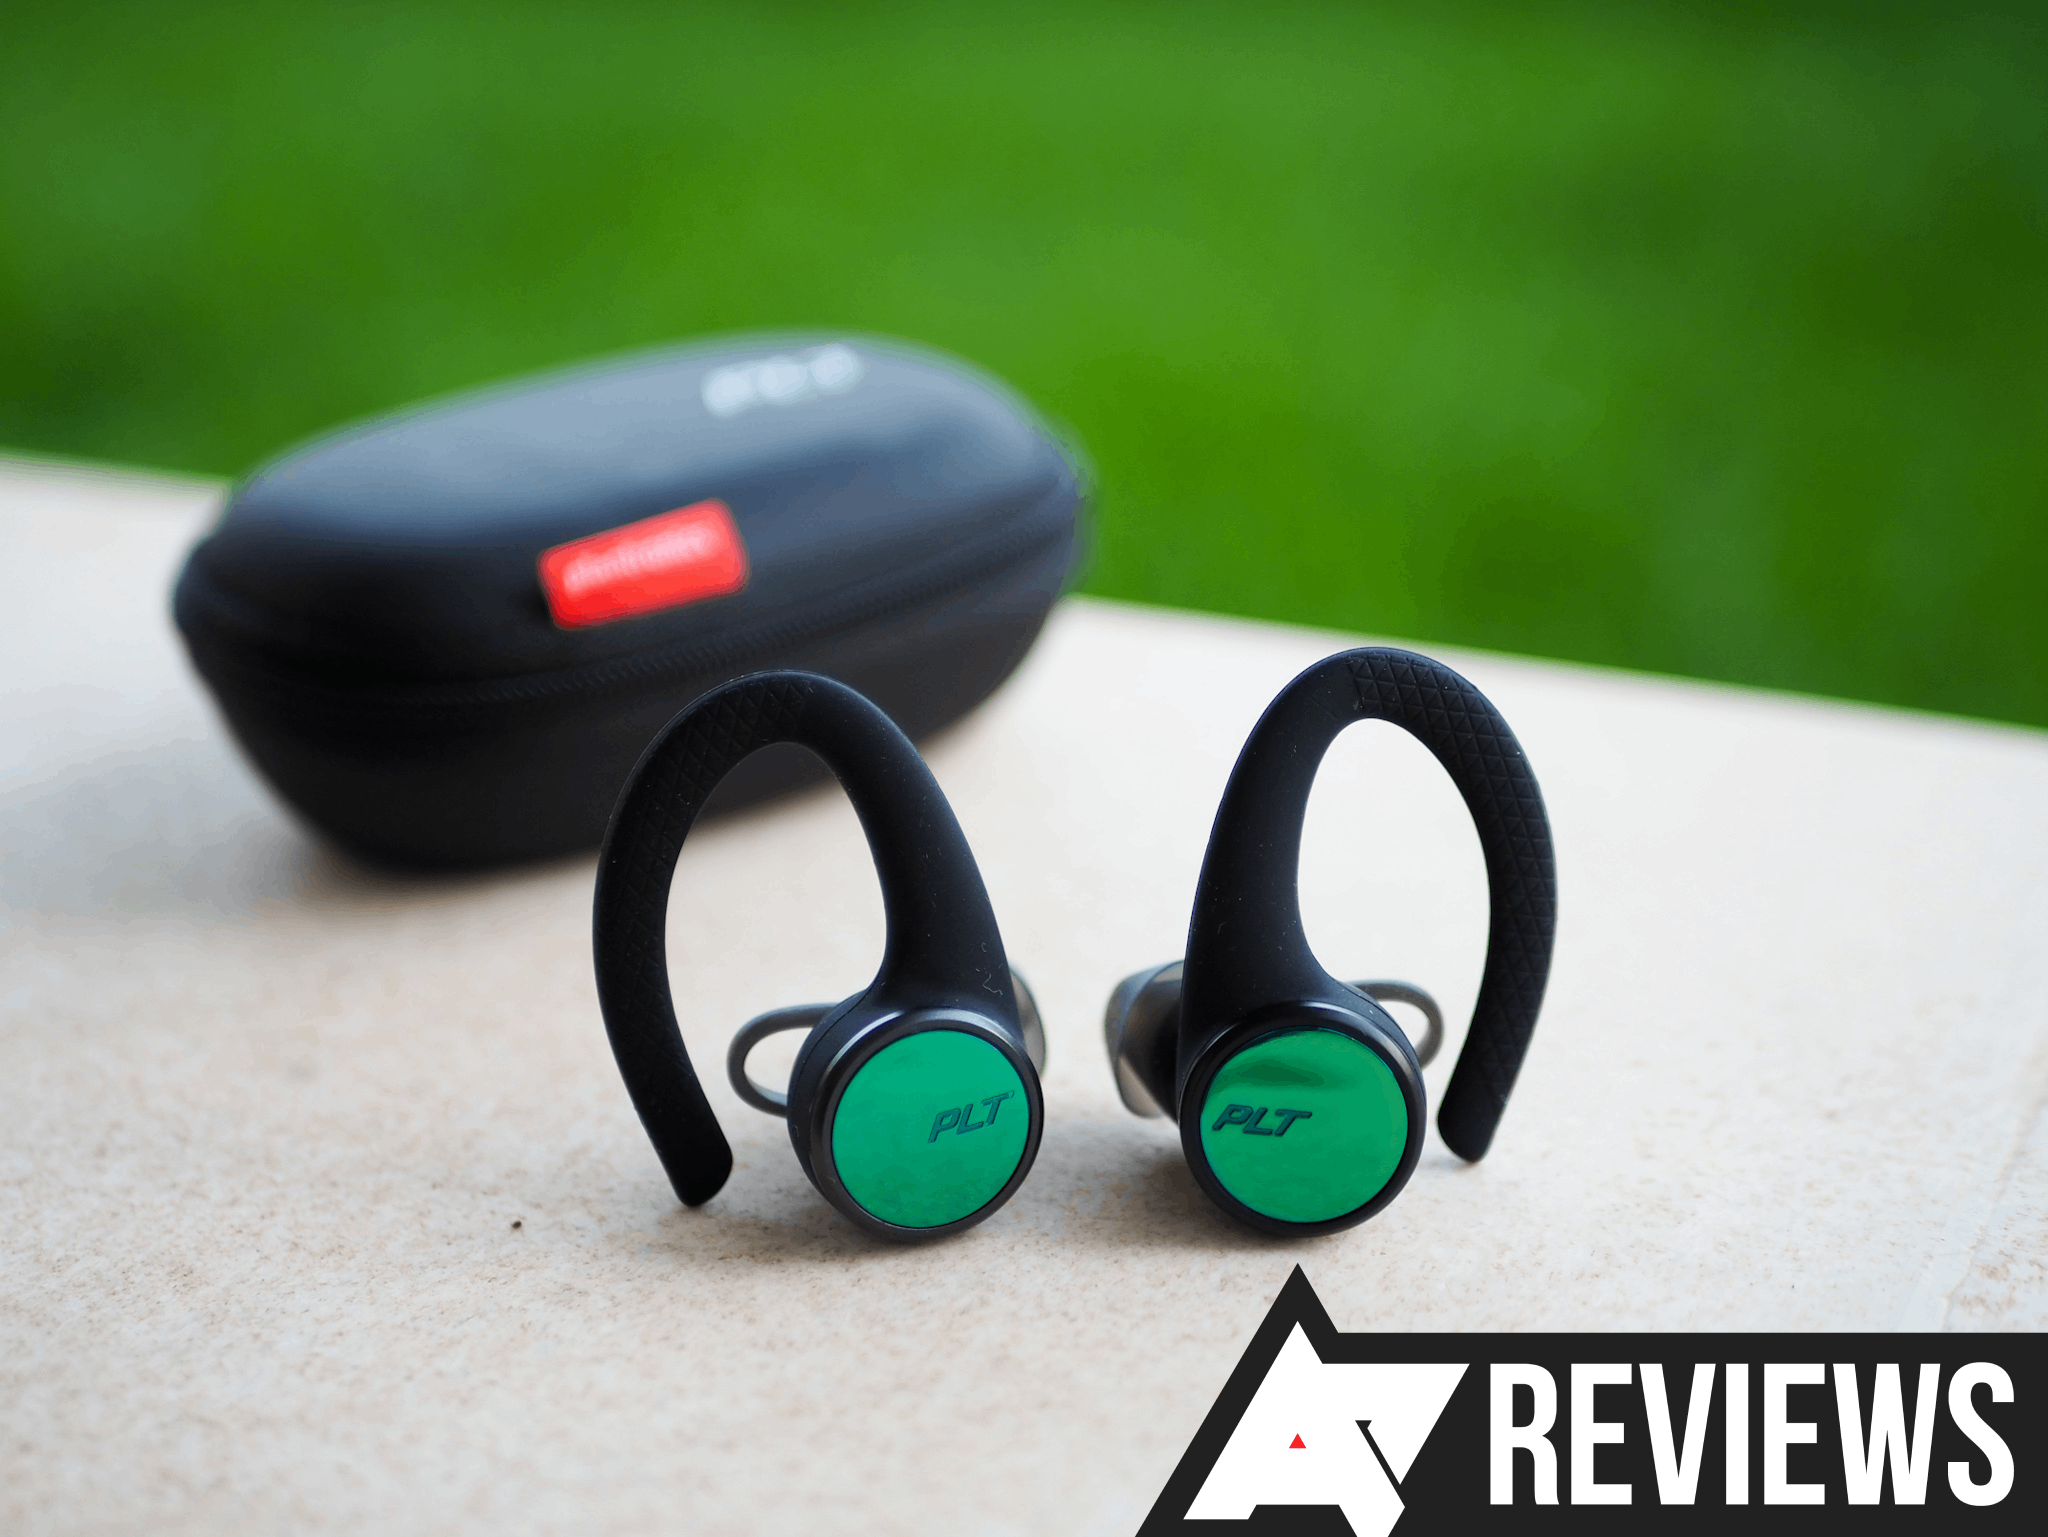 Plantronics Backbeat 3200 Review Stable Sports Buds That Hit All The Right Notes But One